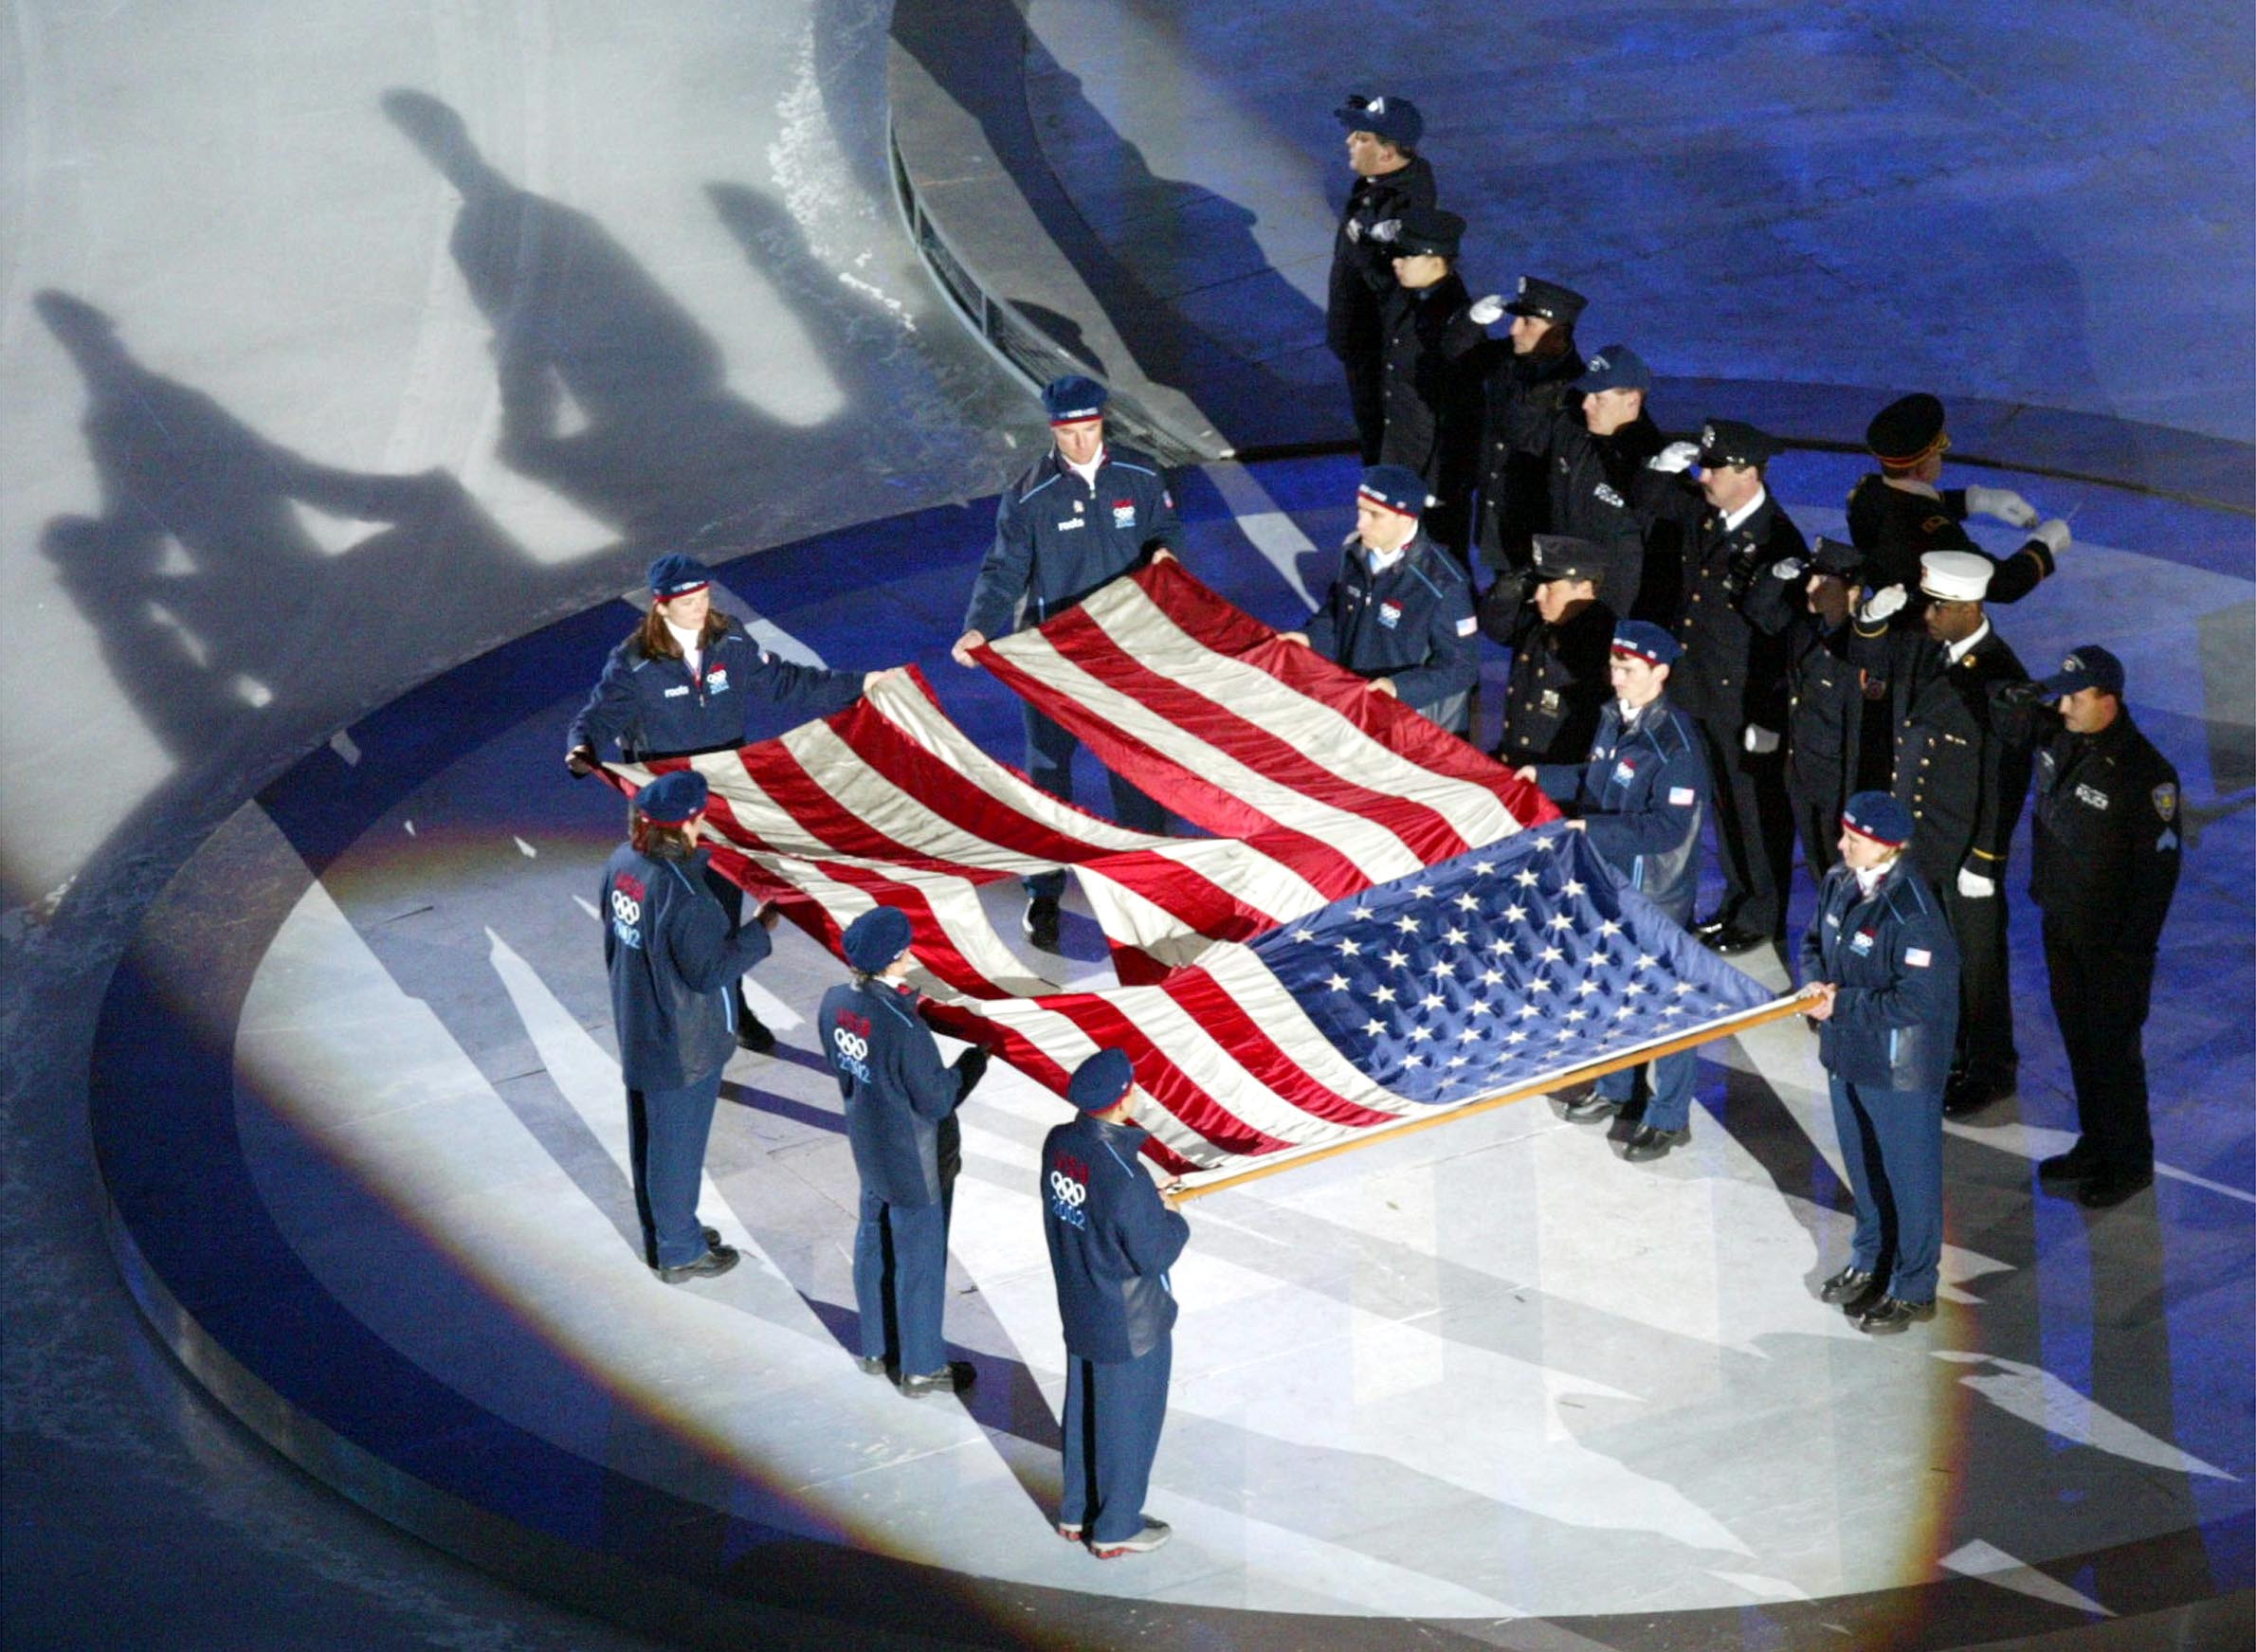 The World Trade Center flag is presented by U.S. athletes and members of the New York Police and Fire departments at the 2002 Winter Games.